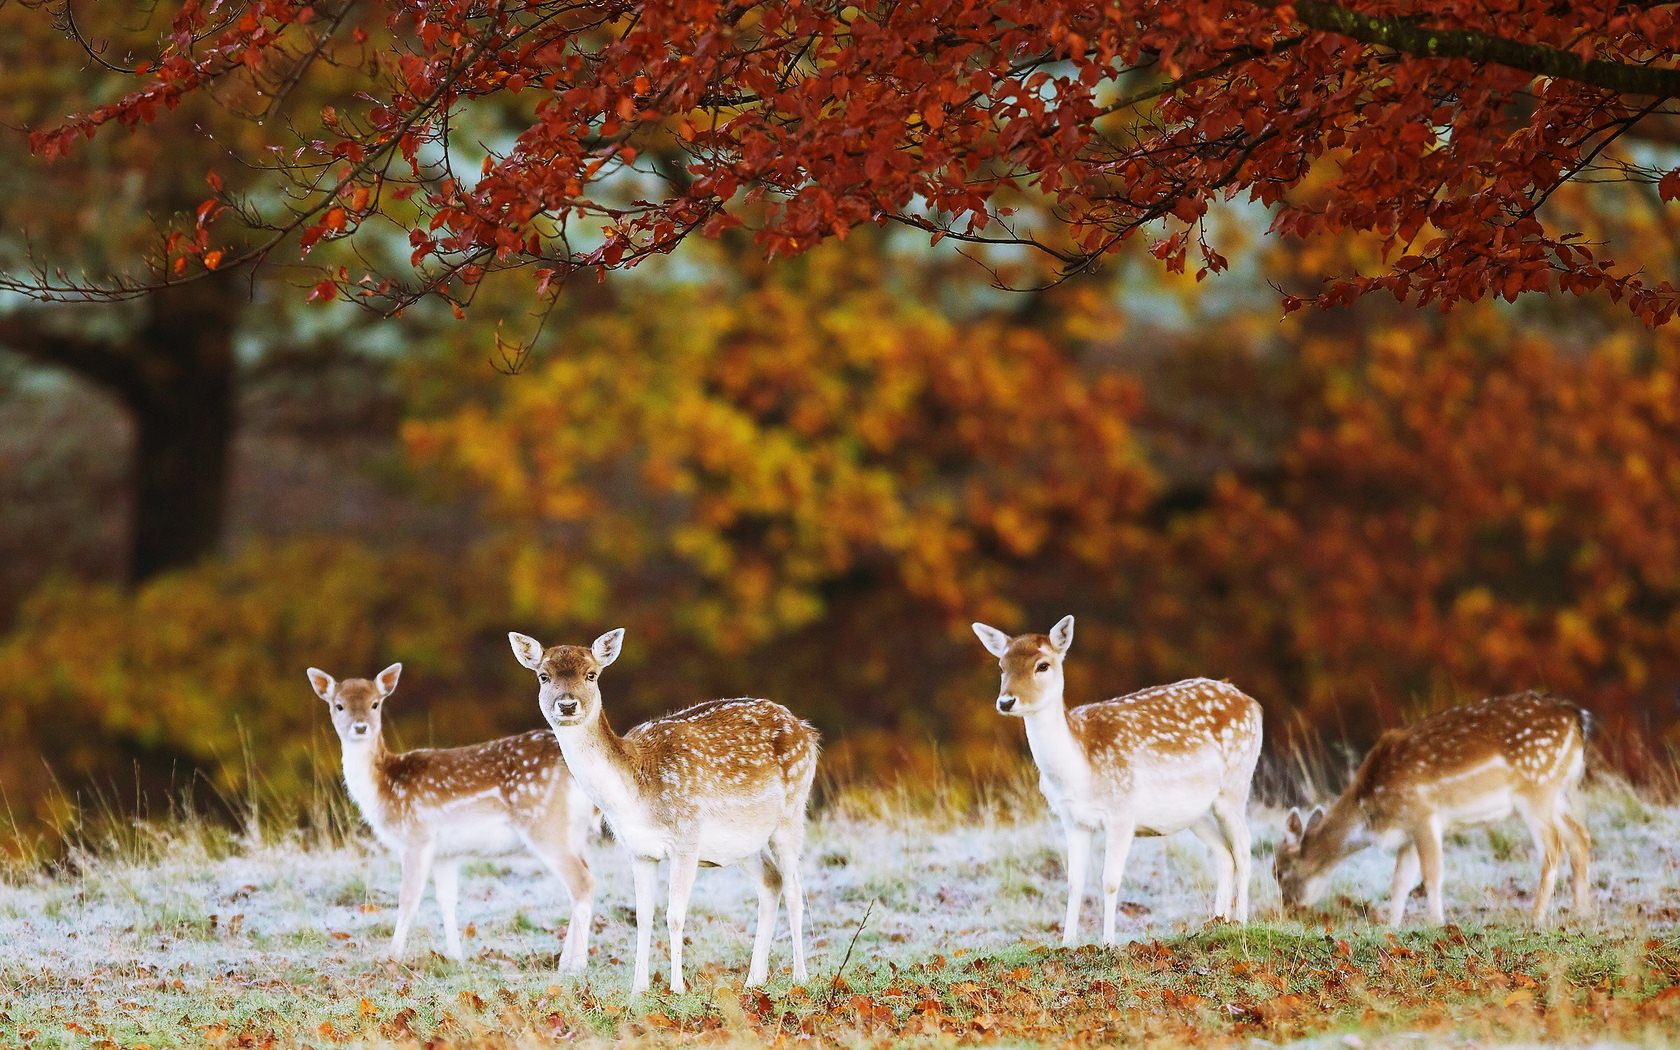 Majestic Fall Wallpaper Animals In Autumn Inotternews Com